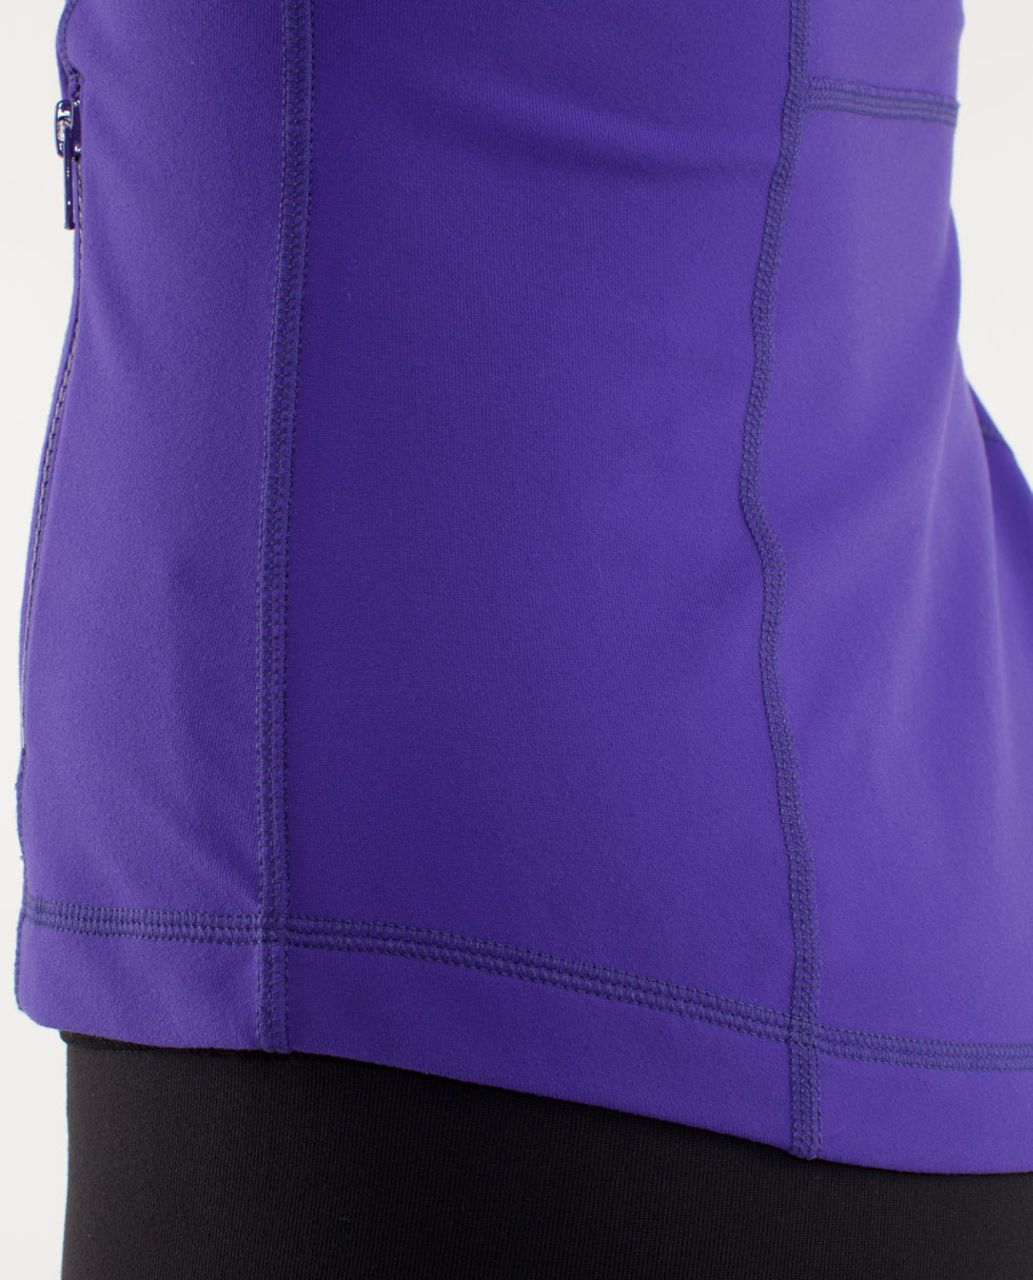 Lululemon Define Jacket - Bruised Berry